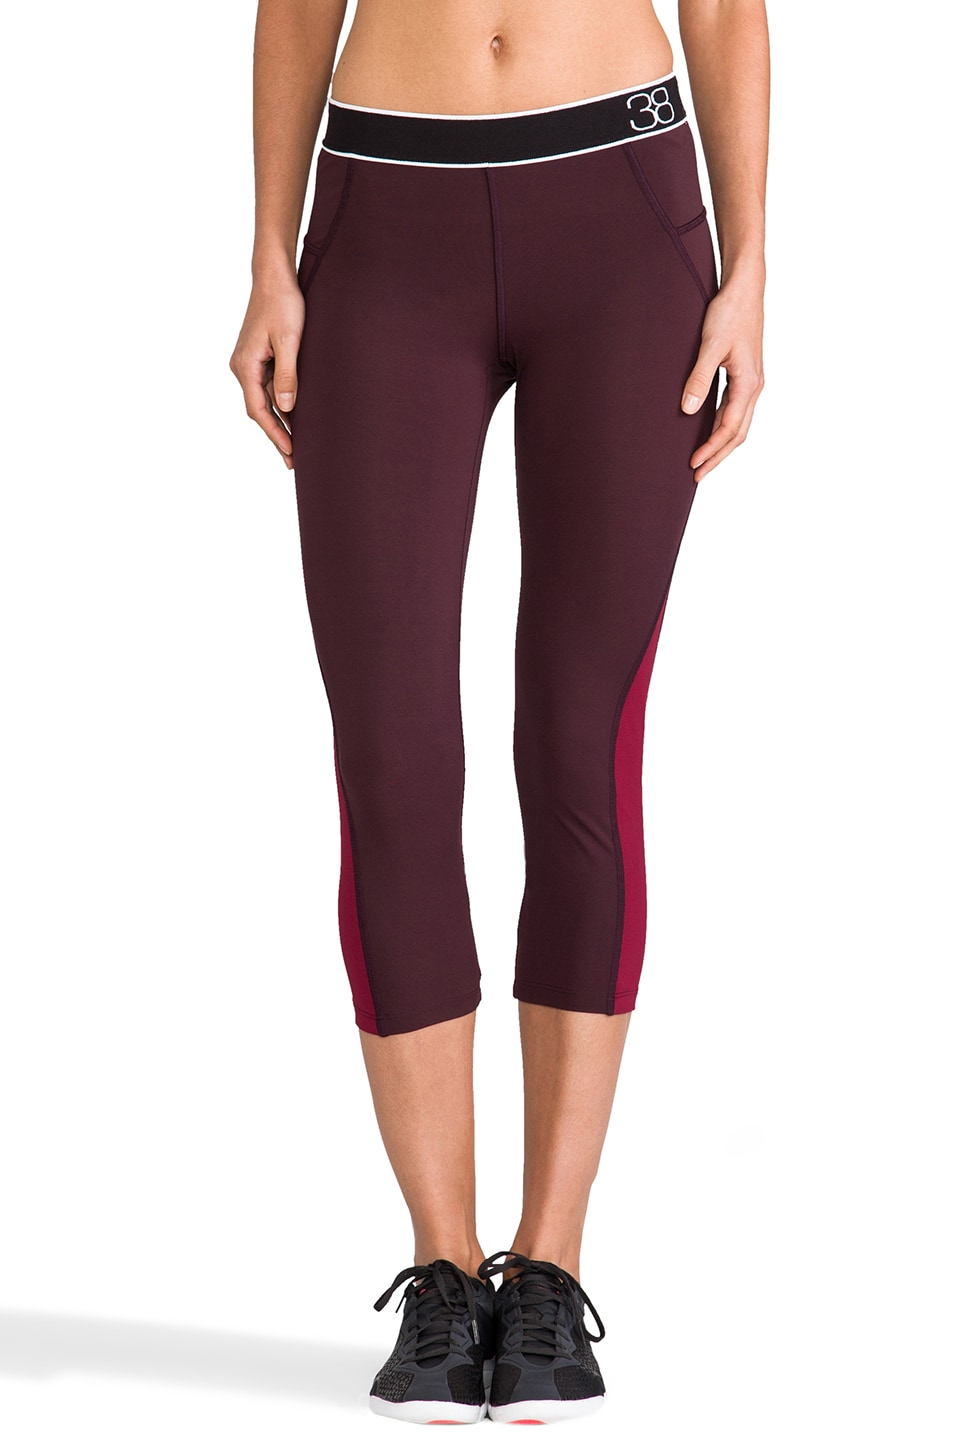 Theory 38 Podium Dust Pant in Viper